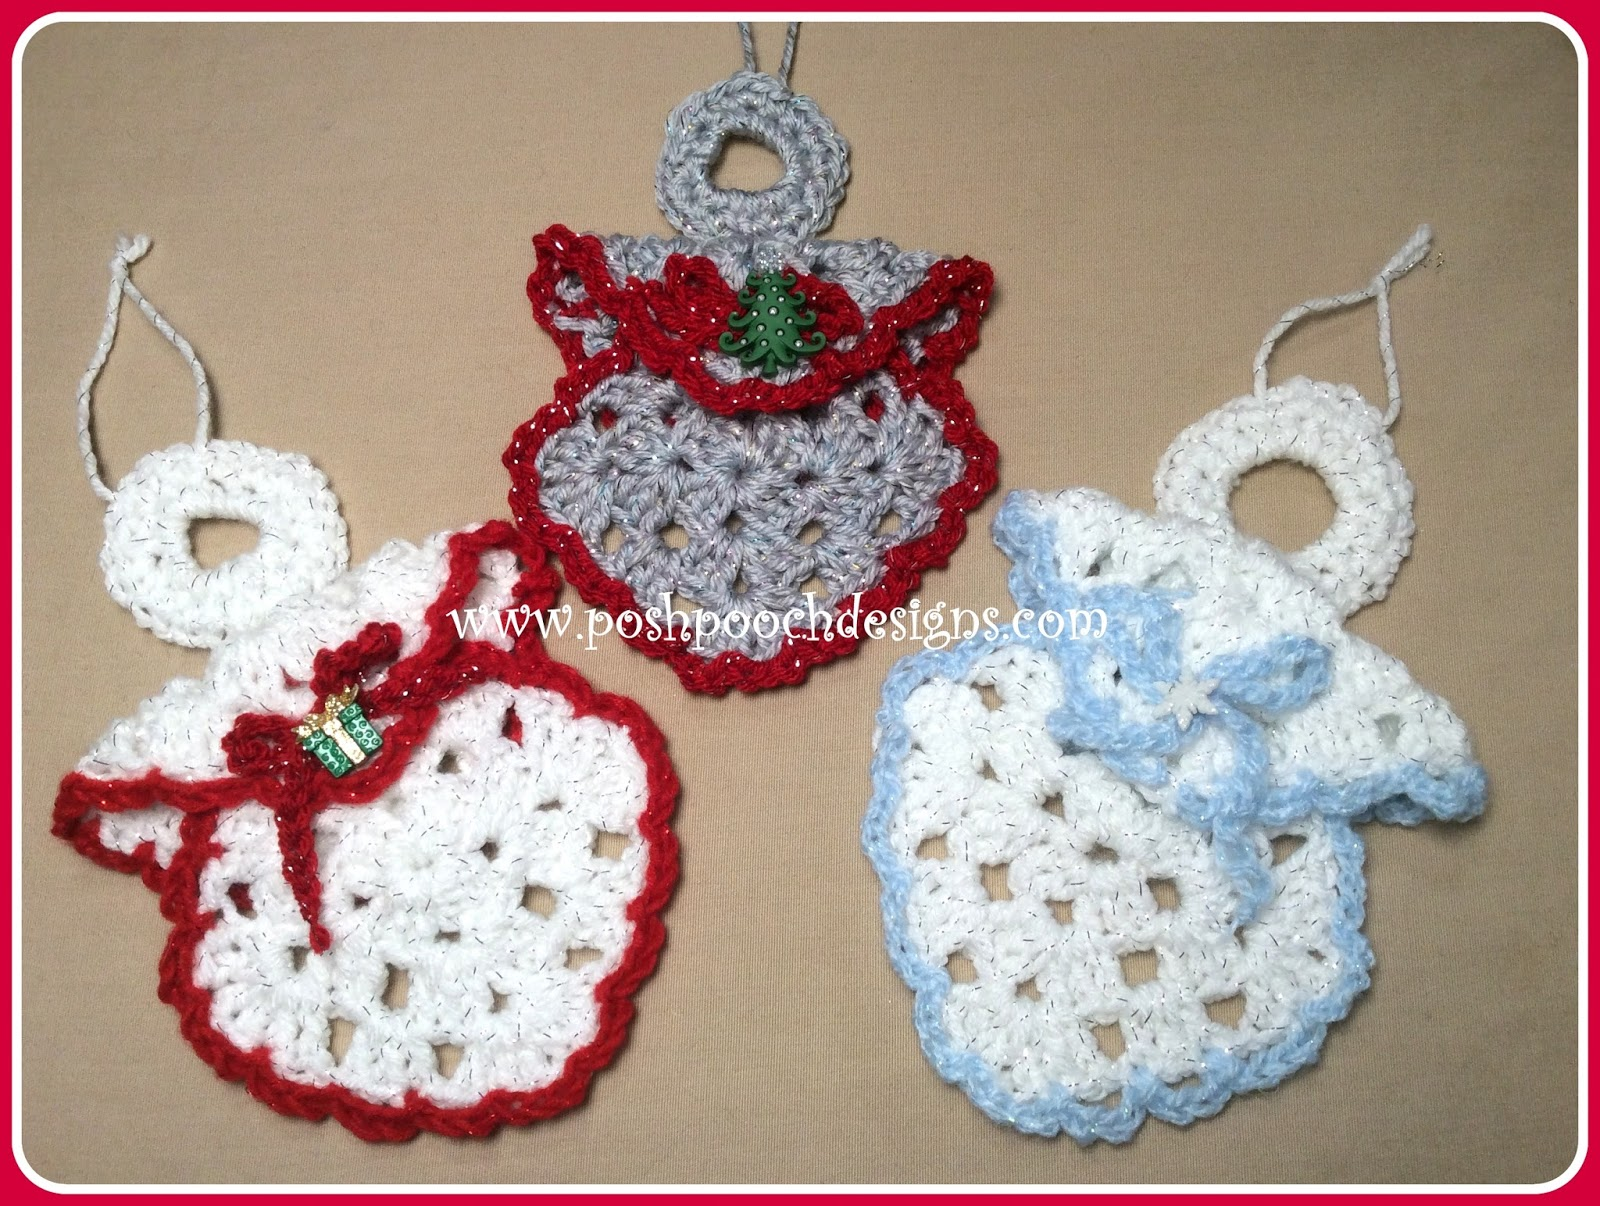 Posh Pooch Designs Dog Clothes: Granny Square Angel Ornament Crochet ...